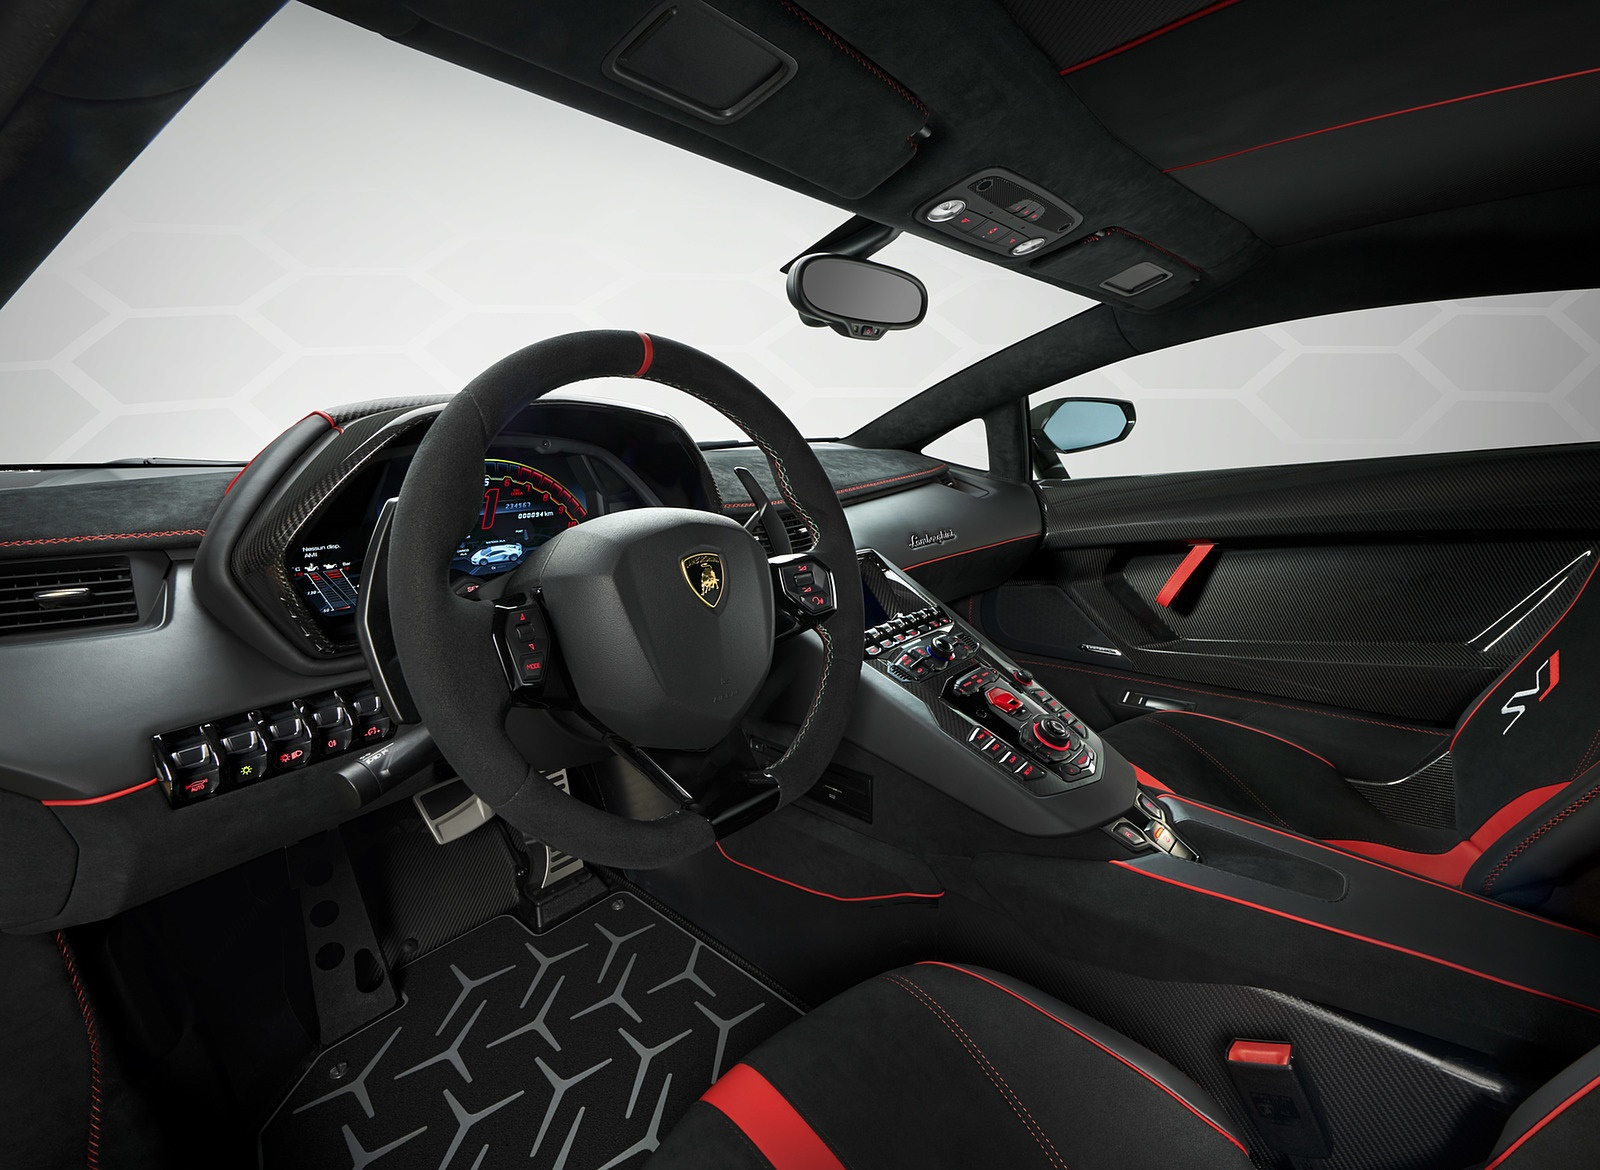 2019 Lamborghini Aventador Svj Interior Wallpaper 177 Hd Wallpapers